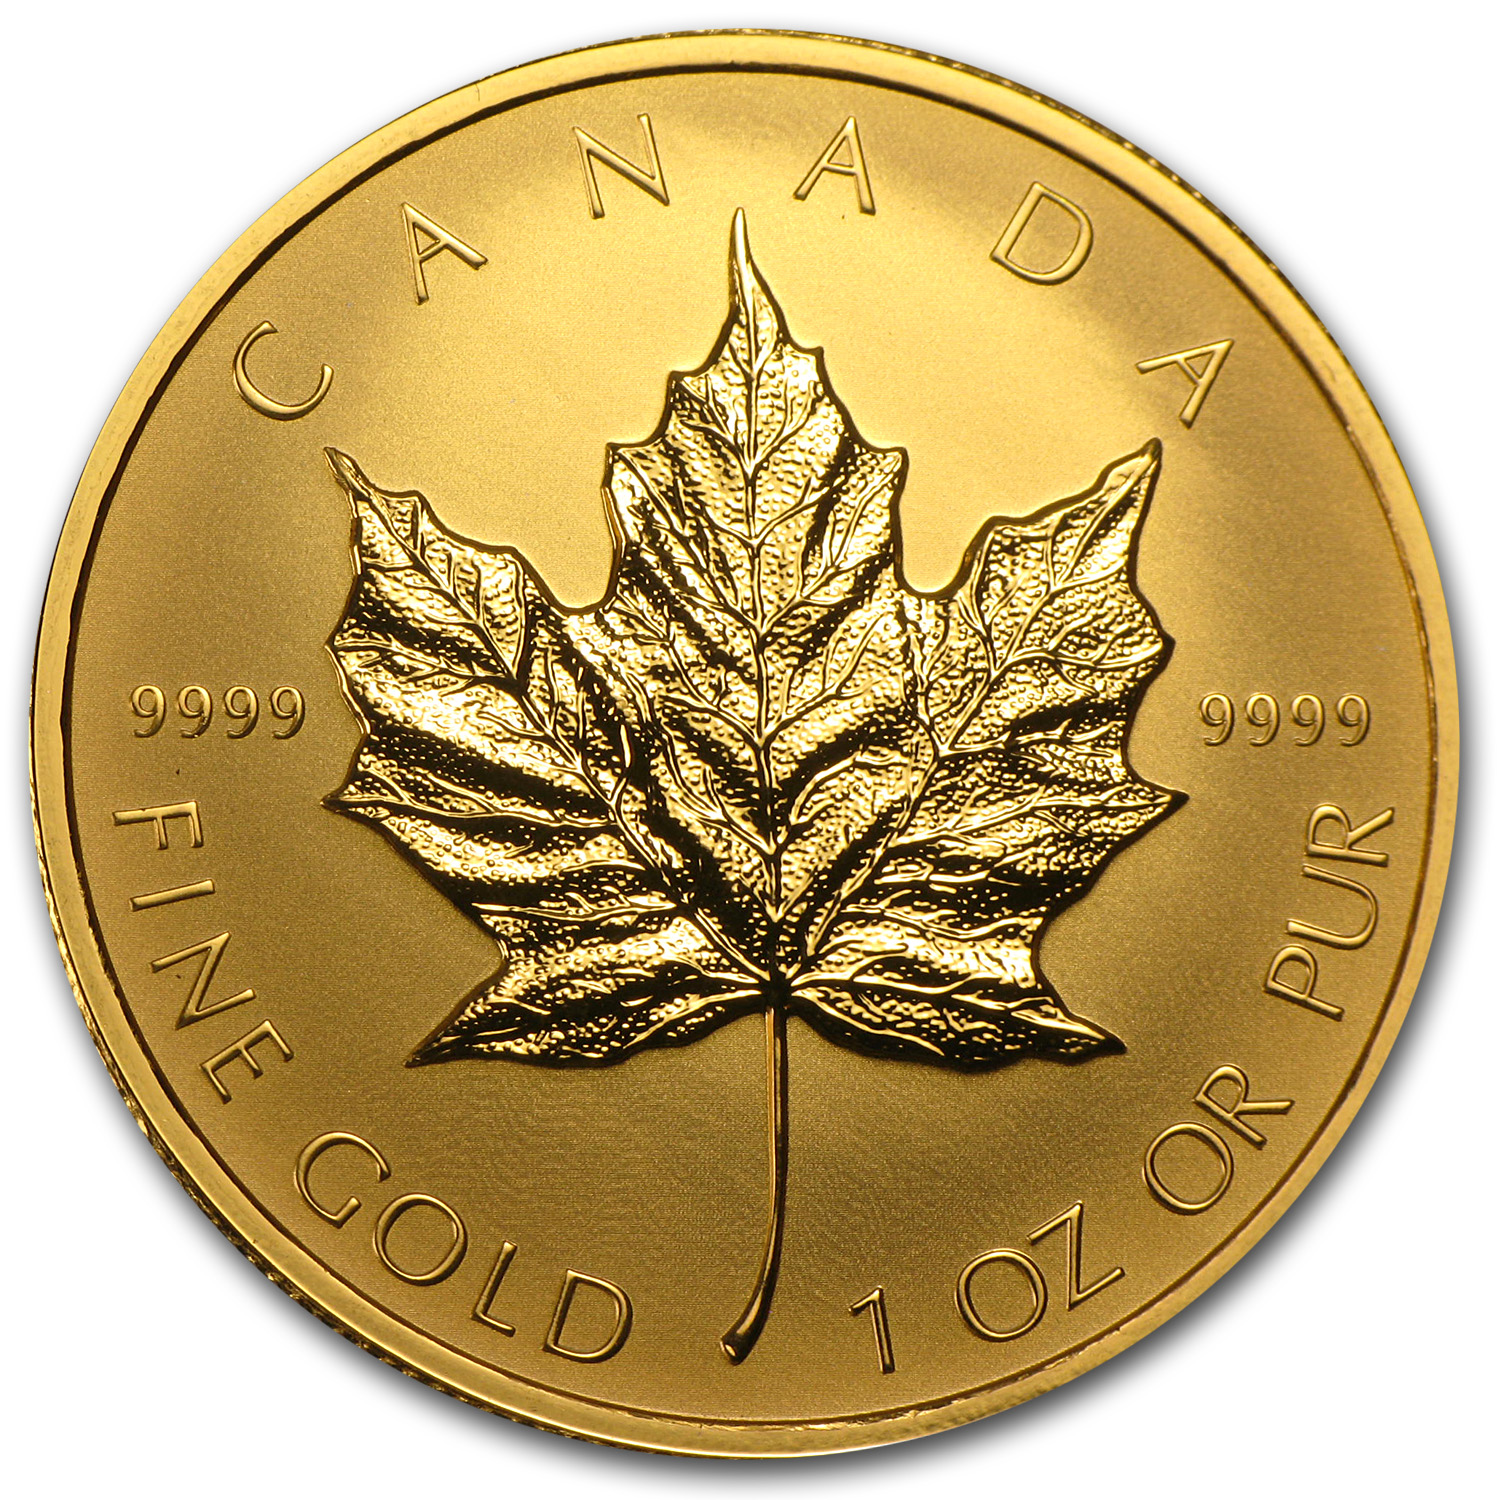 2014 Canada 1 oz Reverse Proof Gold Maple Leaf